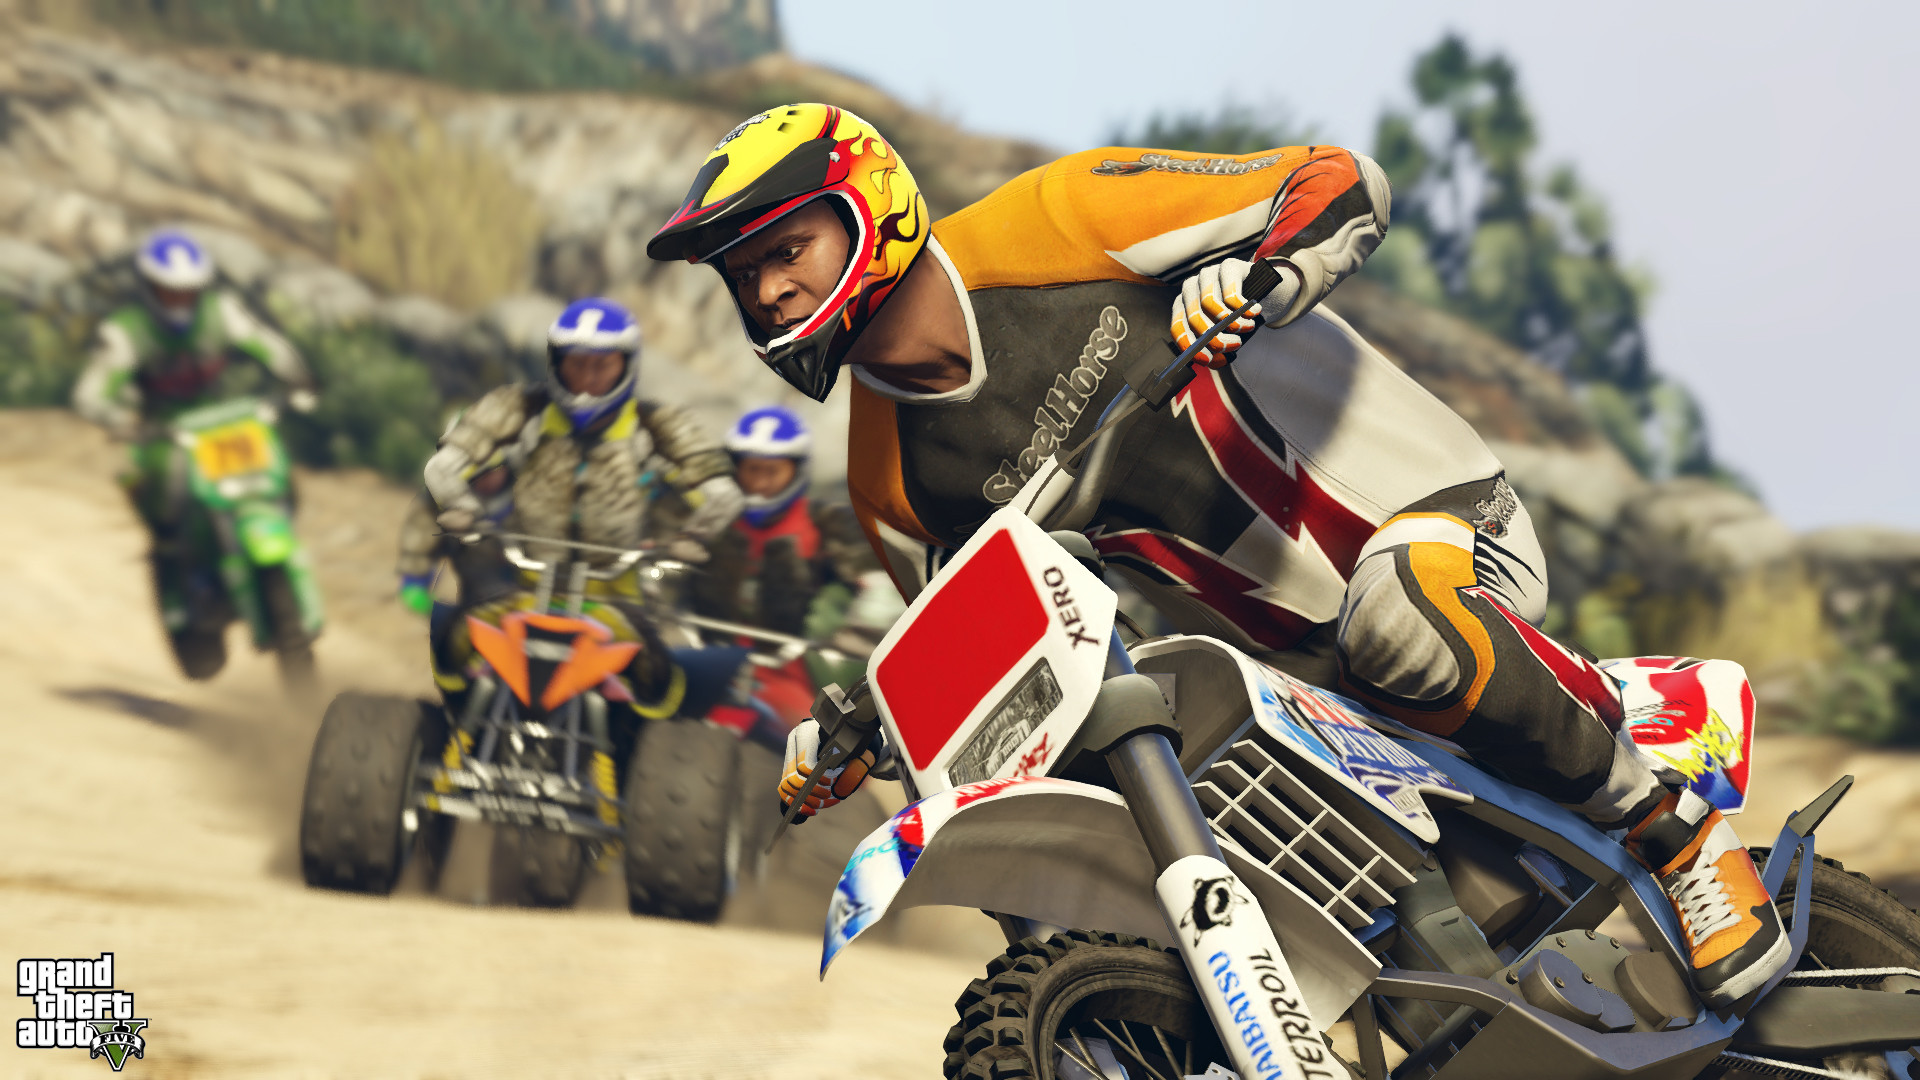 1920x1080 Rumour: GTA V PC Version Settings Are Similar To GTA IV's | The Games Cabin